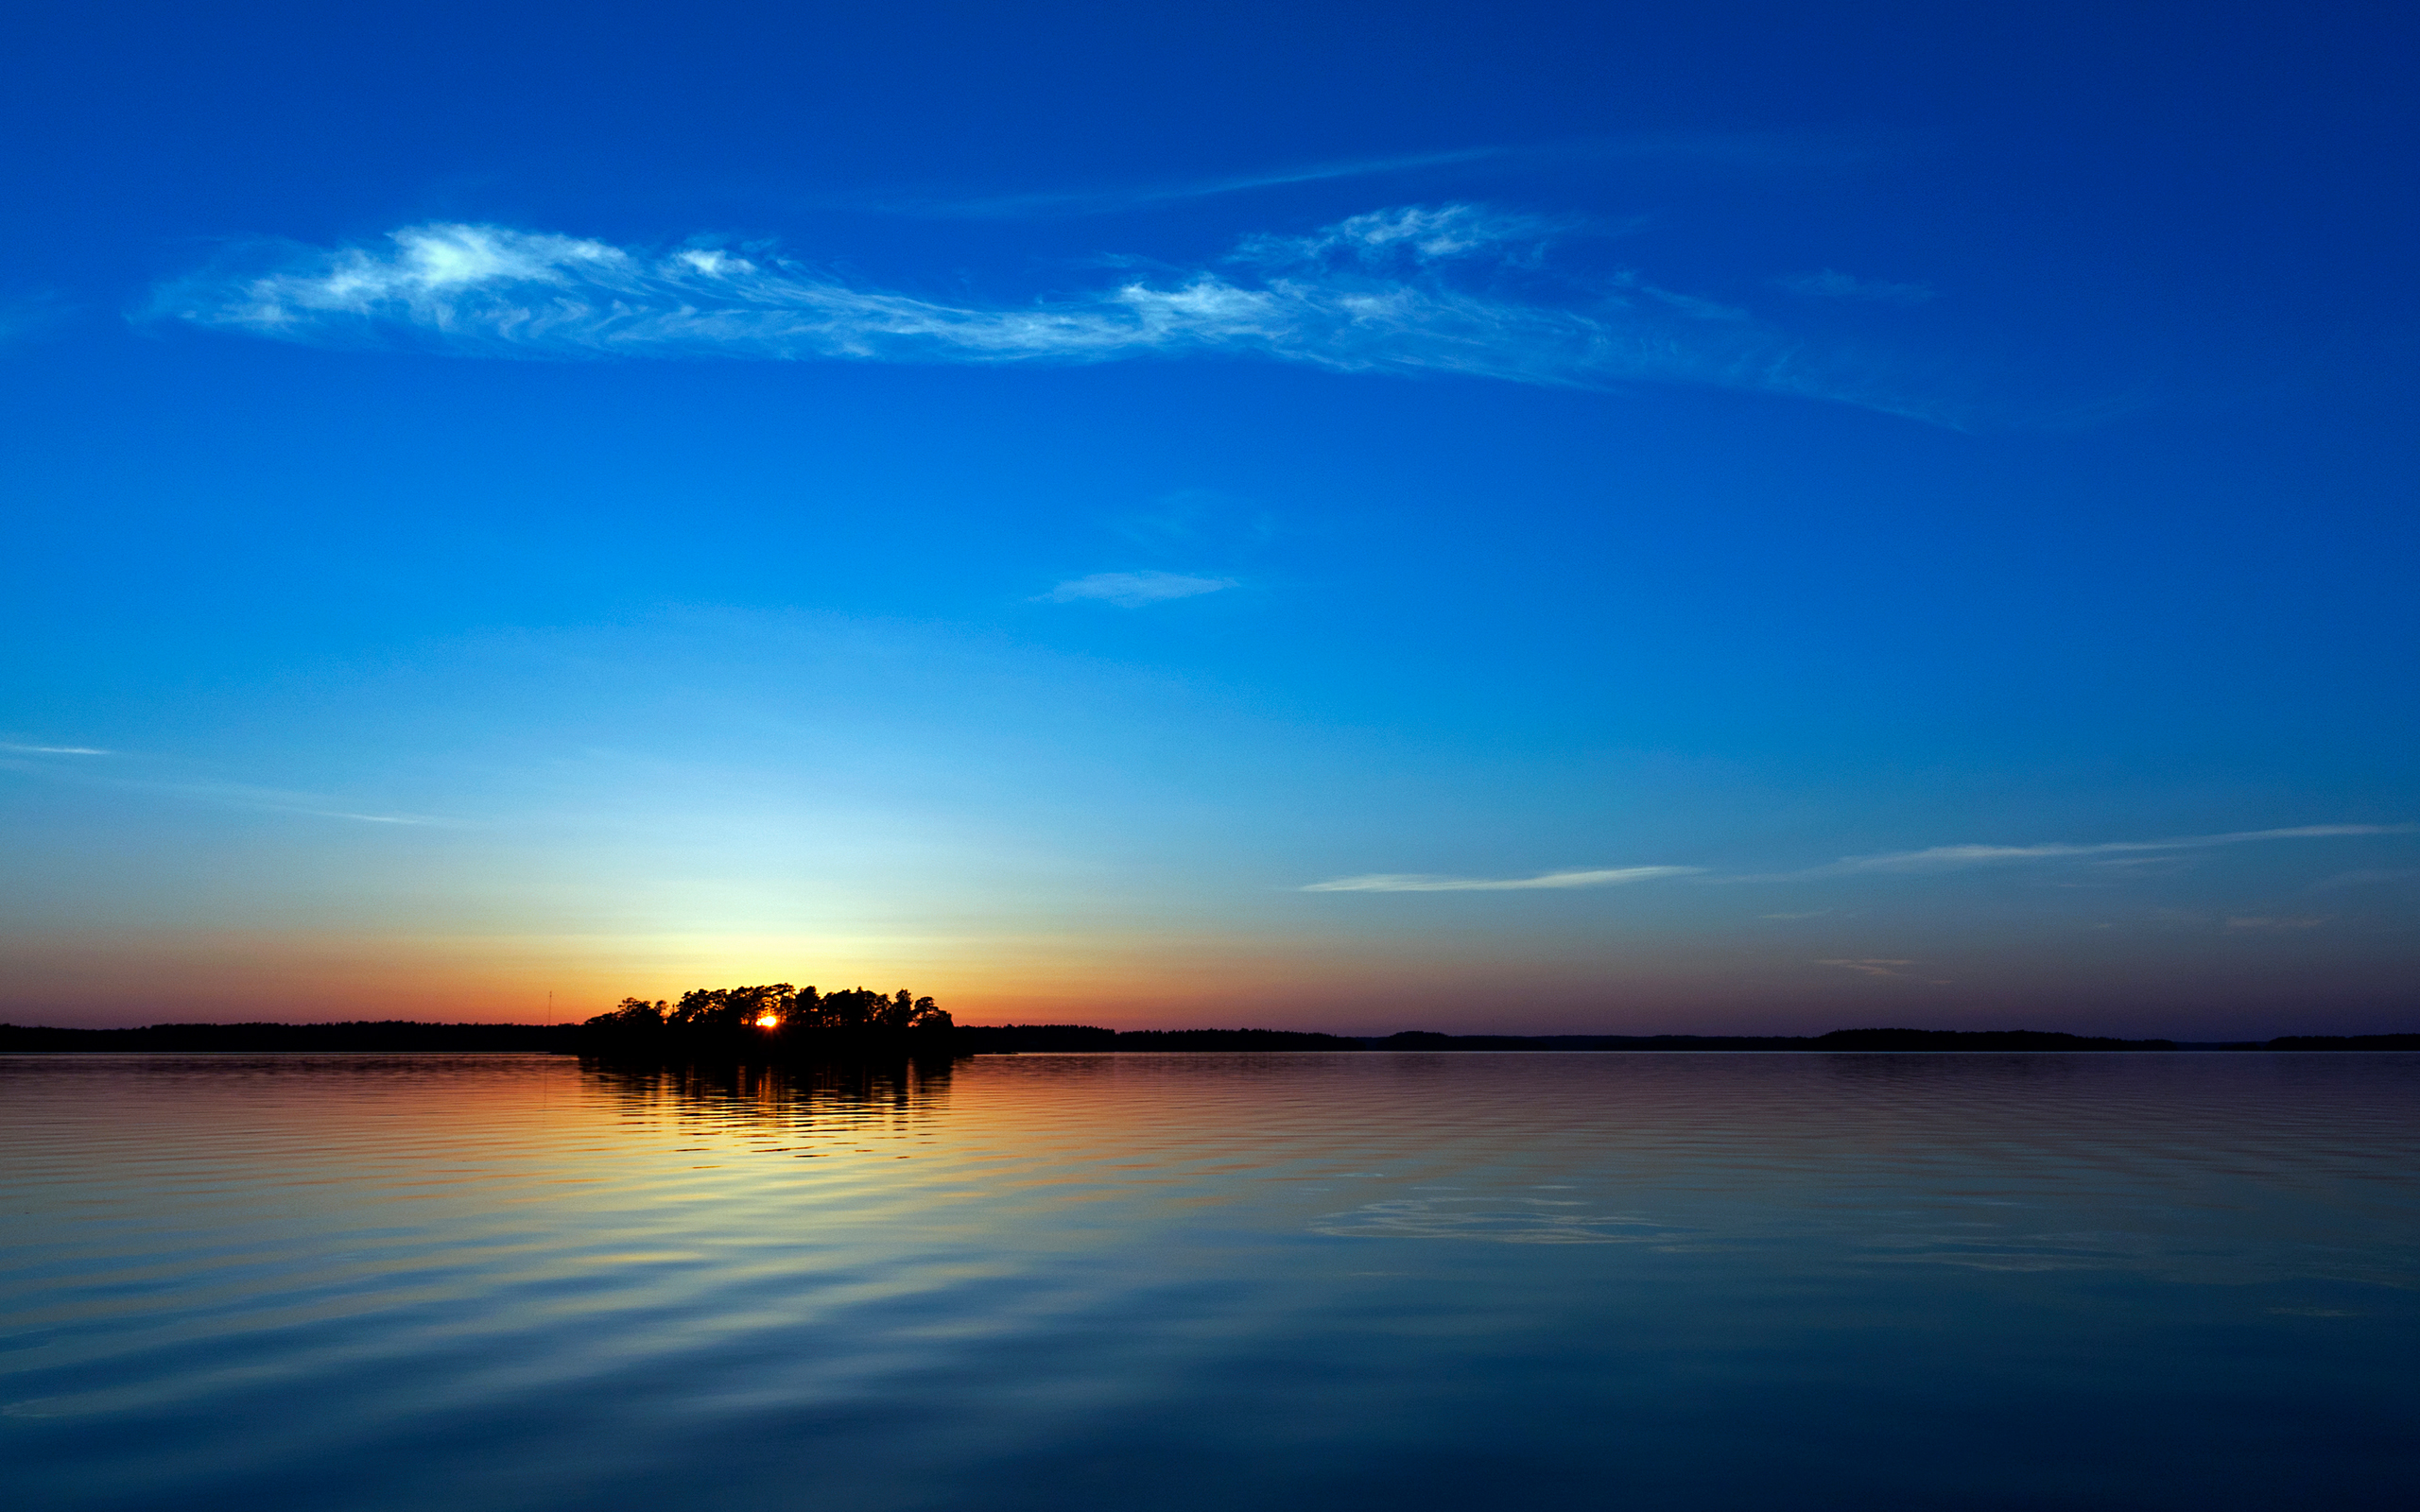 Blue Sunset Wallpapers HD Wallpapers 2560x1600